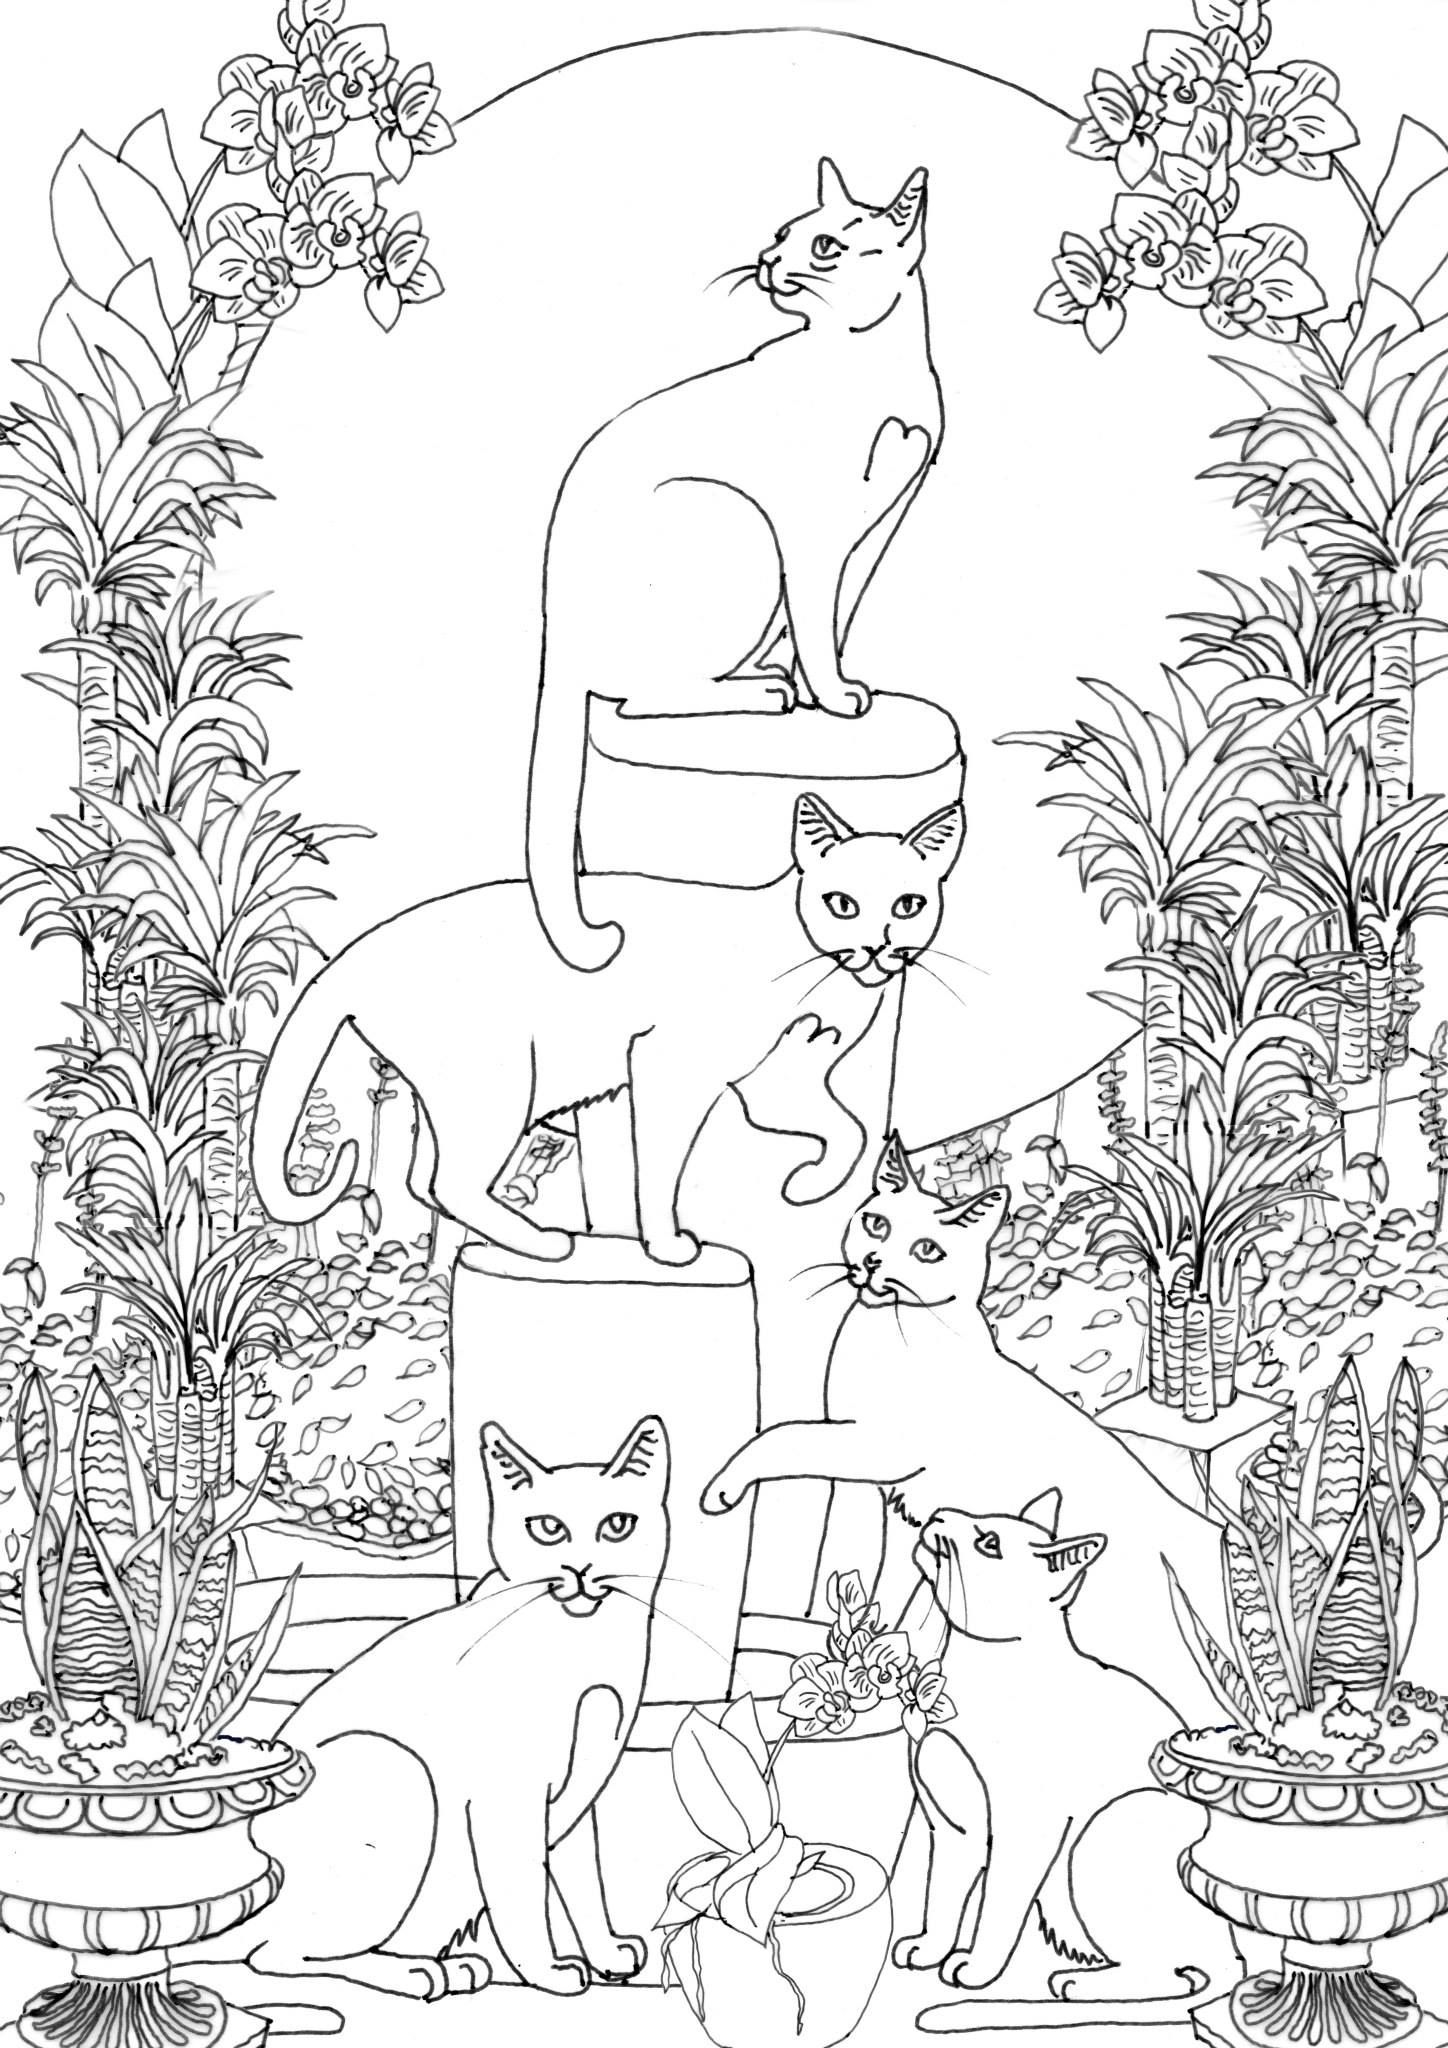 Inge S Line And Doodle Art Cats In The Green House